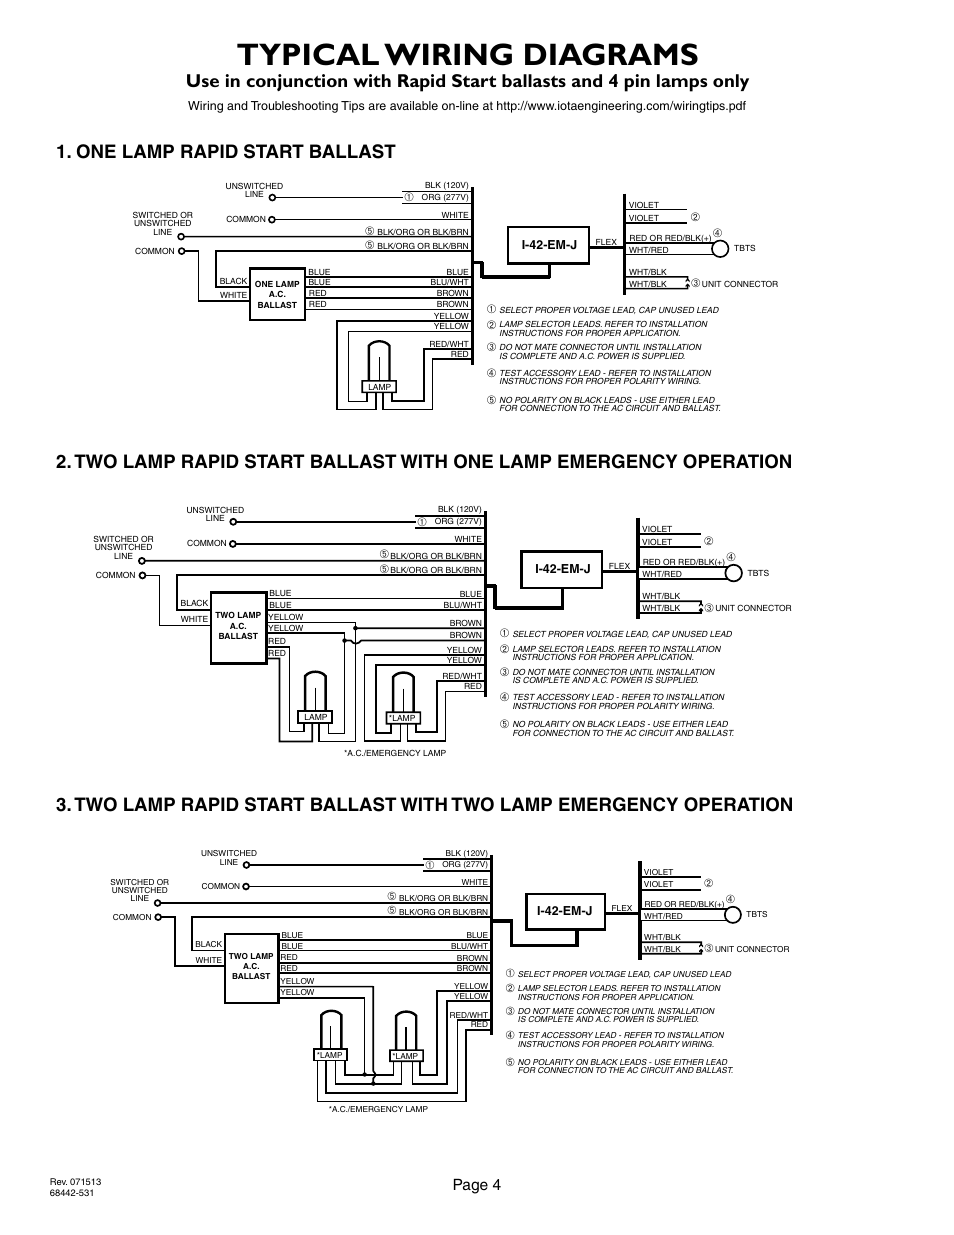 Haywire Wiring Diagram Schematics For Street Rod Pro T System Switch U2022 John Deere Pto Parts